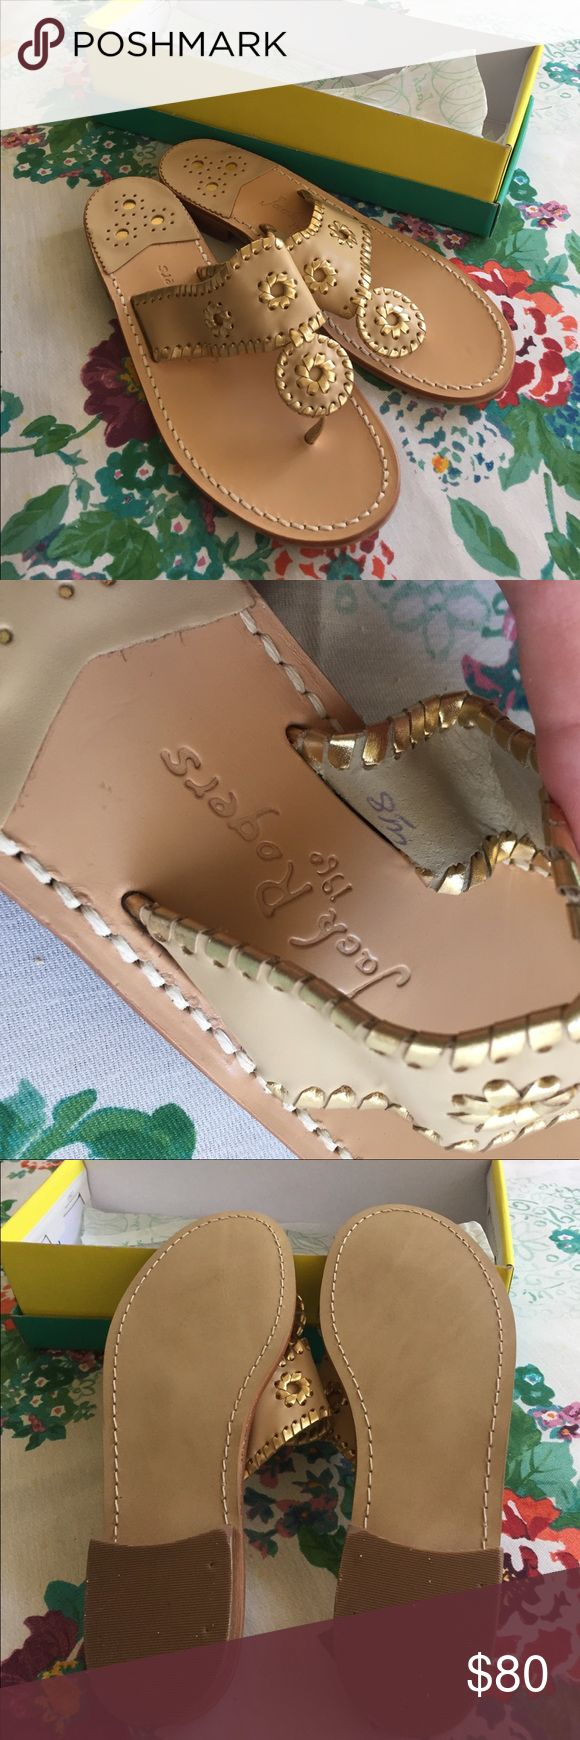 Brand New Jack Rogers Nantucket Sandals These are brand new Jack Rogers Nantucket Sandals in camel and gold color. Jack Rogers Shoes Sandals